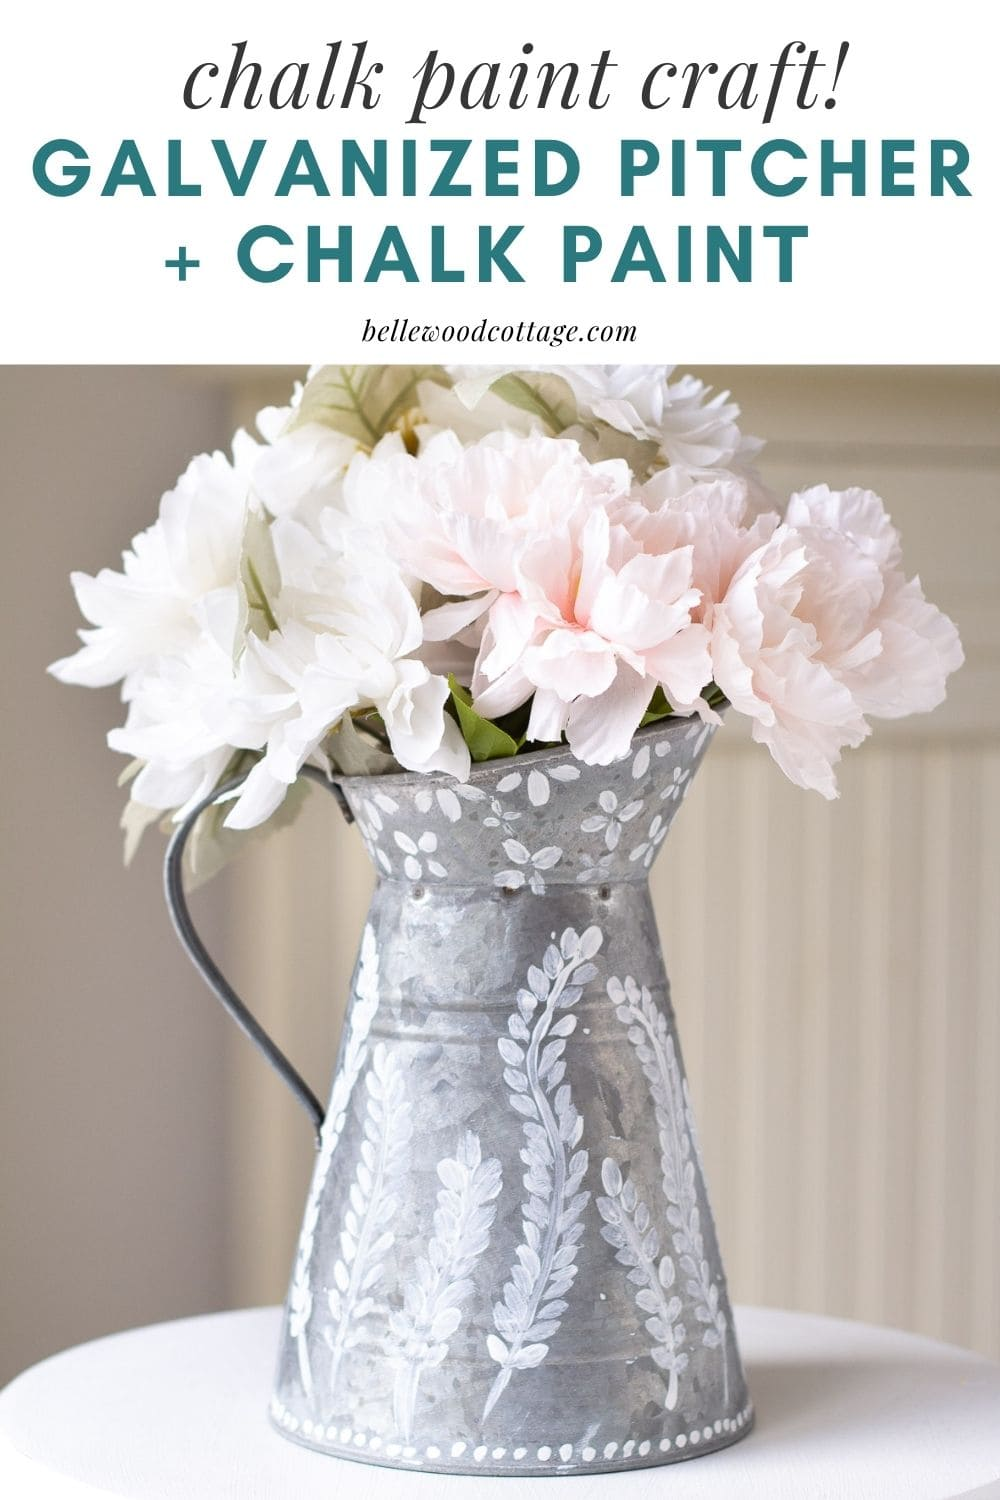 A galvanized pitcher filled with faux florals and decorated with chalk paint.